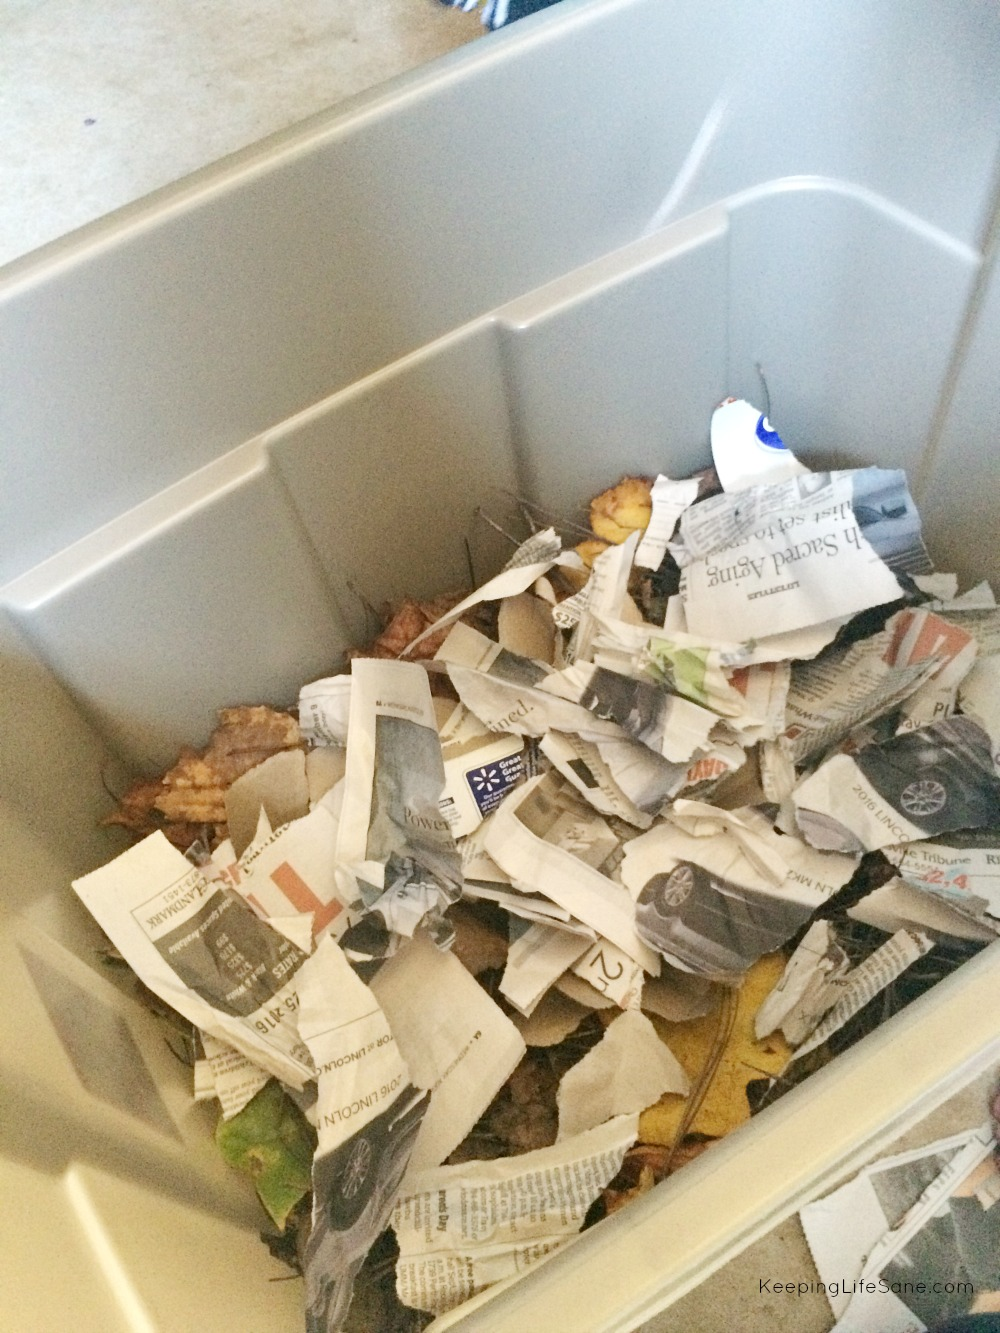 Closeup of inside of Rubbermaid bin that has dried leaves and torn up pieces of newspaper inside.